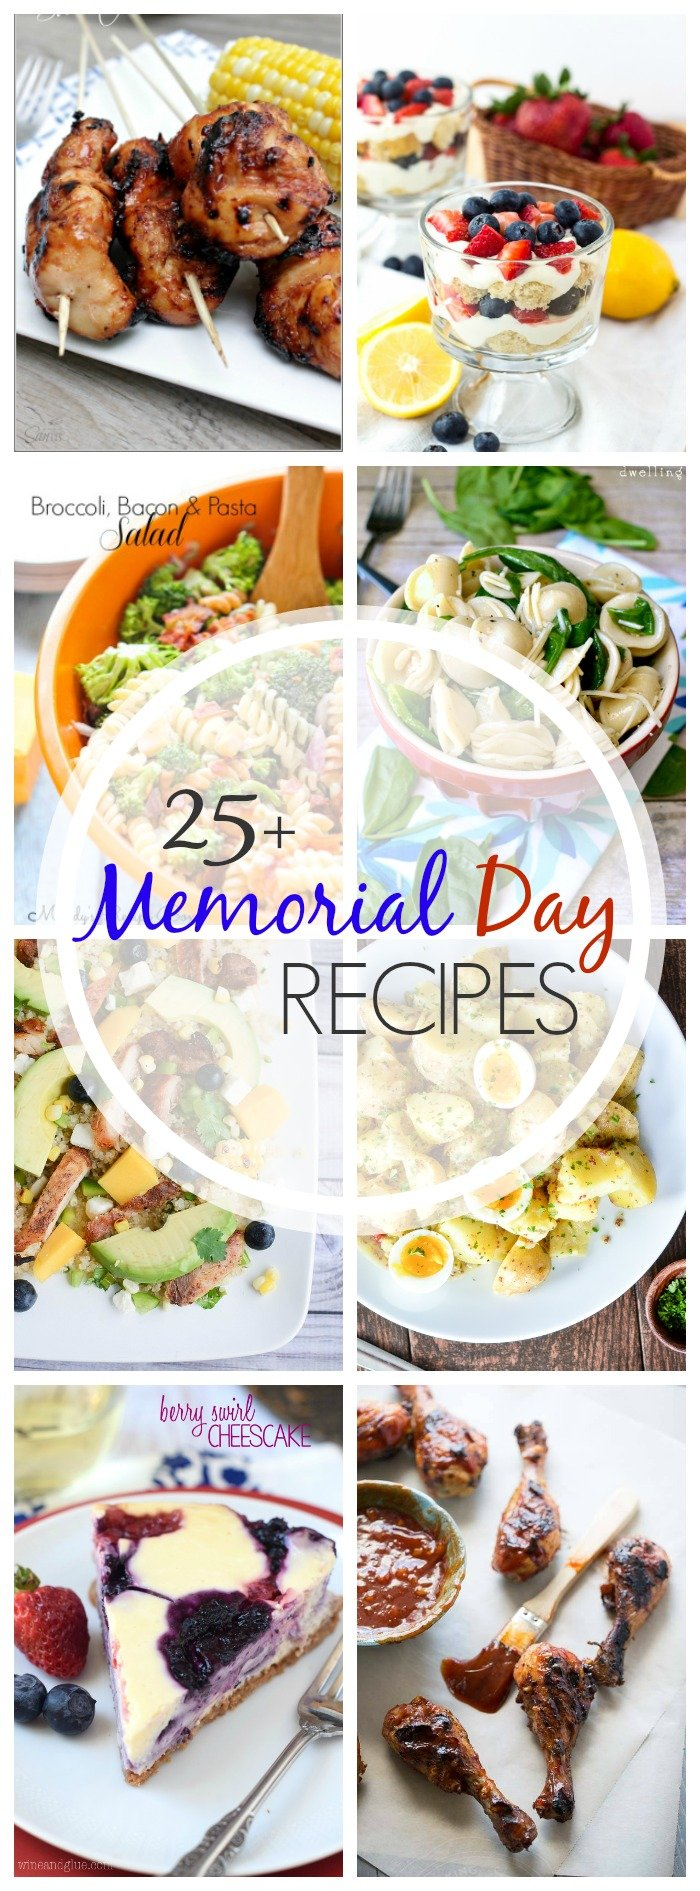 25+ Memorial Day Recipes - over 25 recipes to cook up this summer!